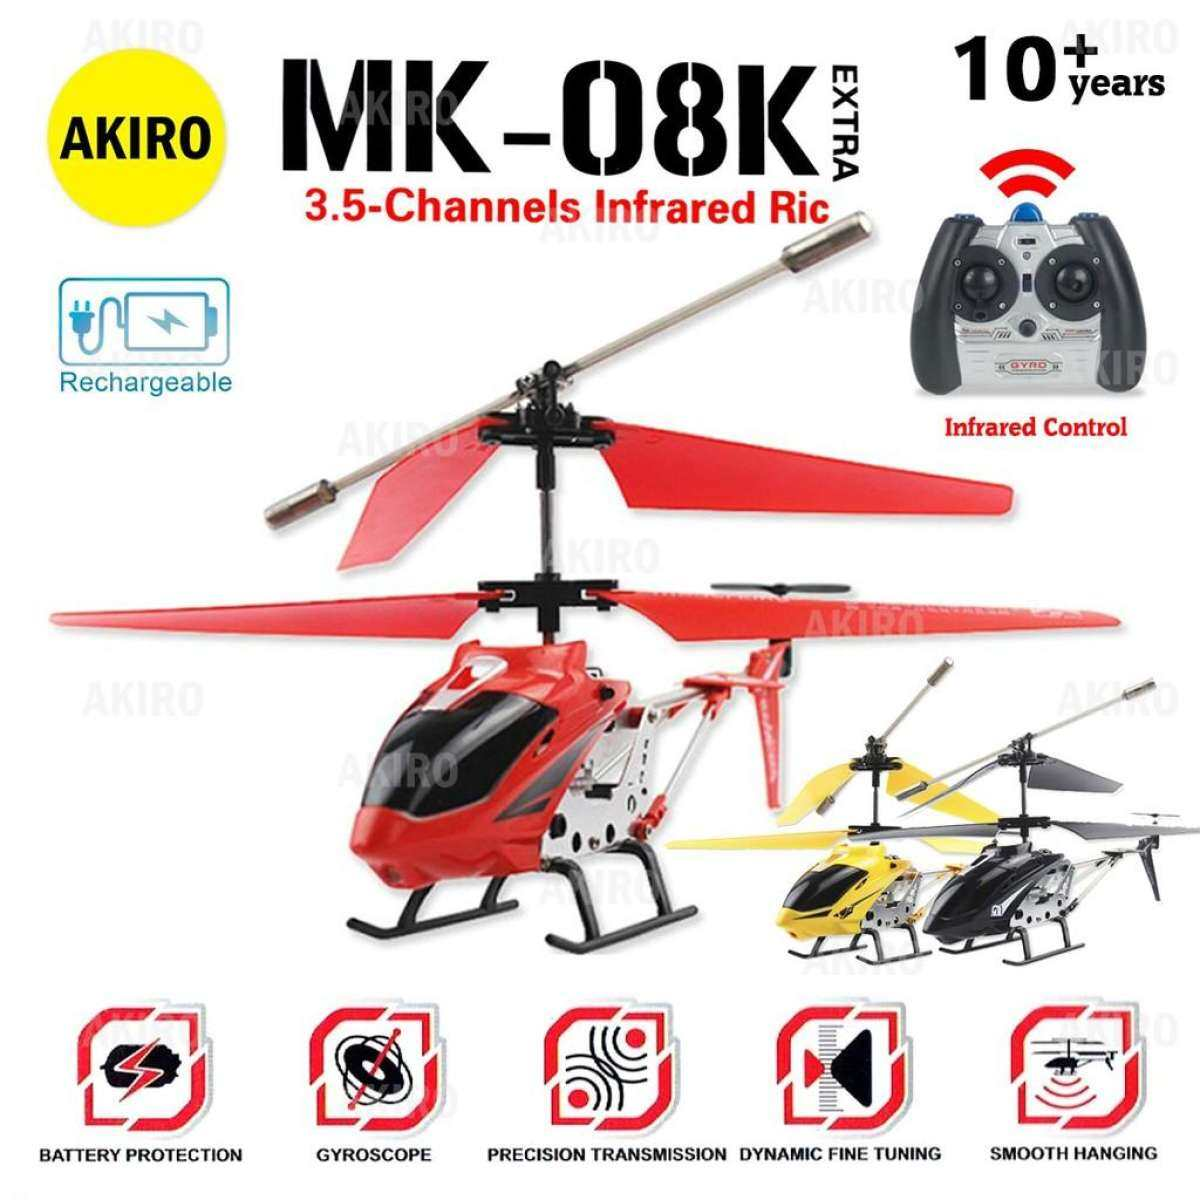 Ready Stock Alloy Mini Rc Helicopter Crash Resistant With Gyroscope 3 5 Channel Mk 08k Ww Lazada